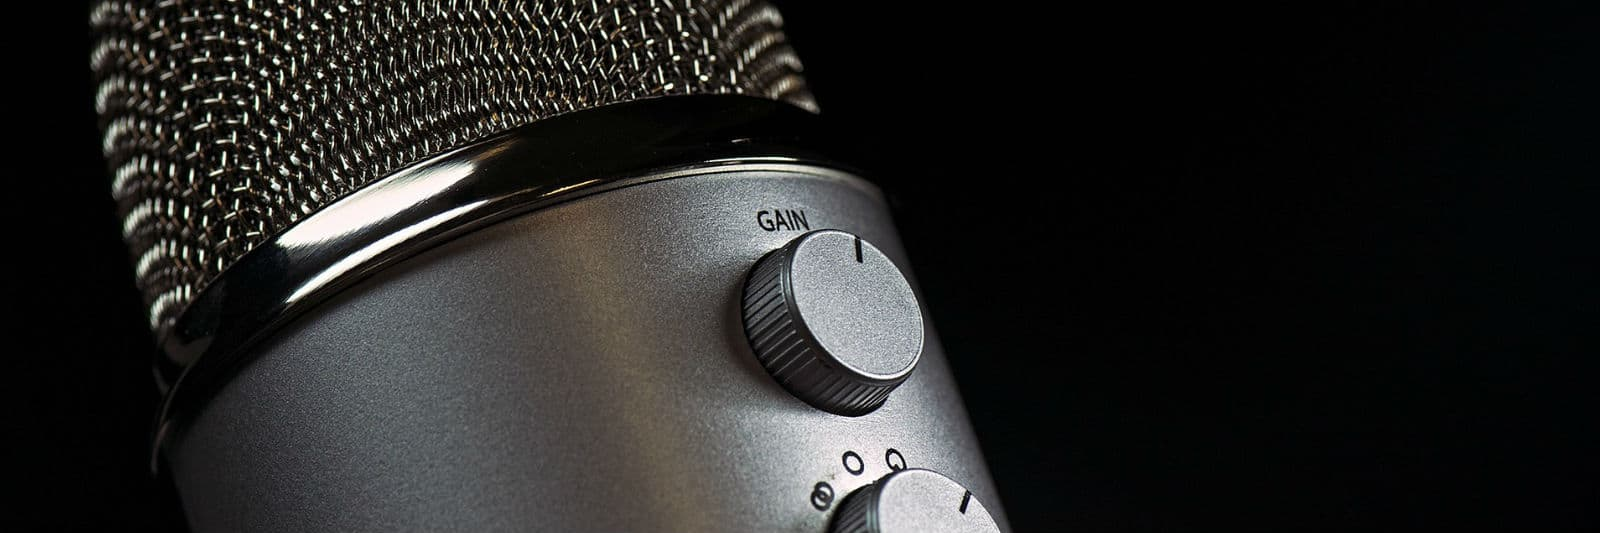 10 Best Lavalier Microphones (Mic) for DSLR Cameras